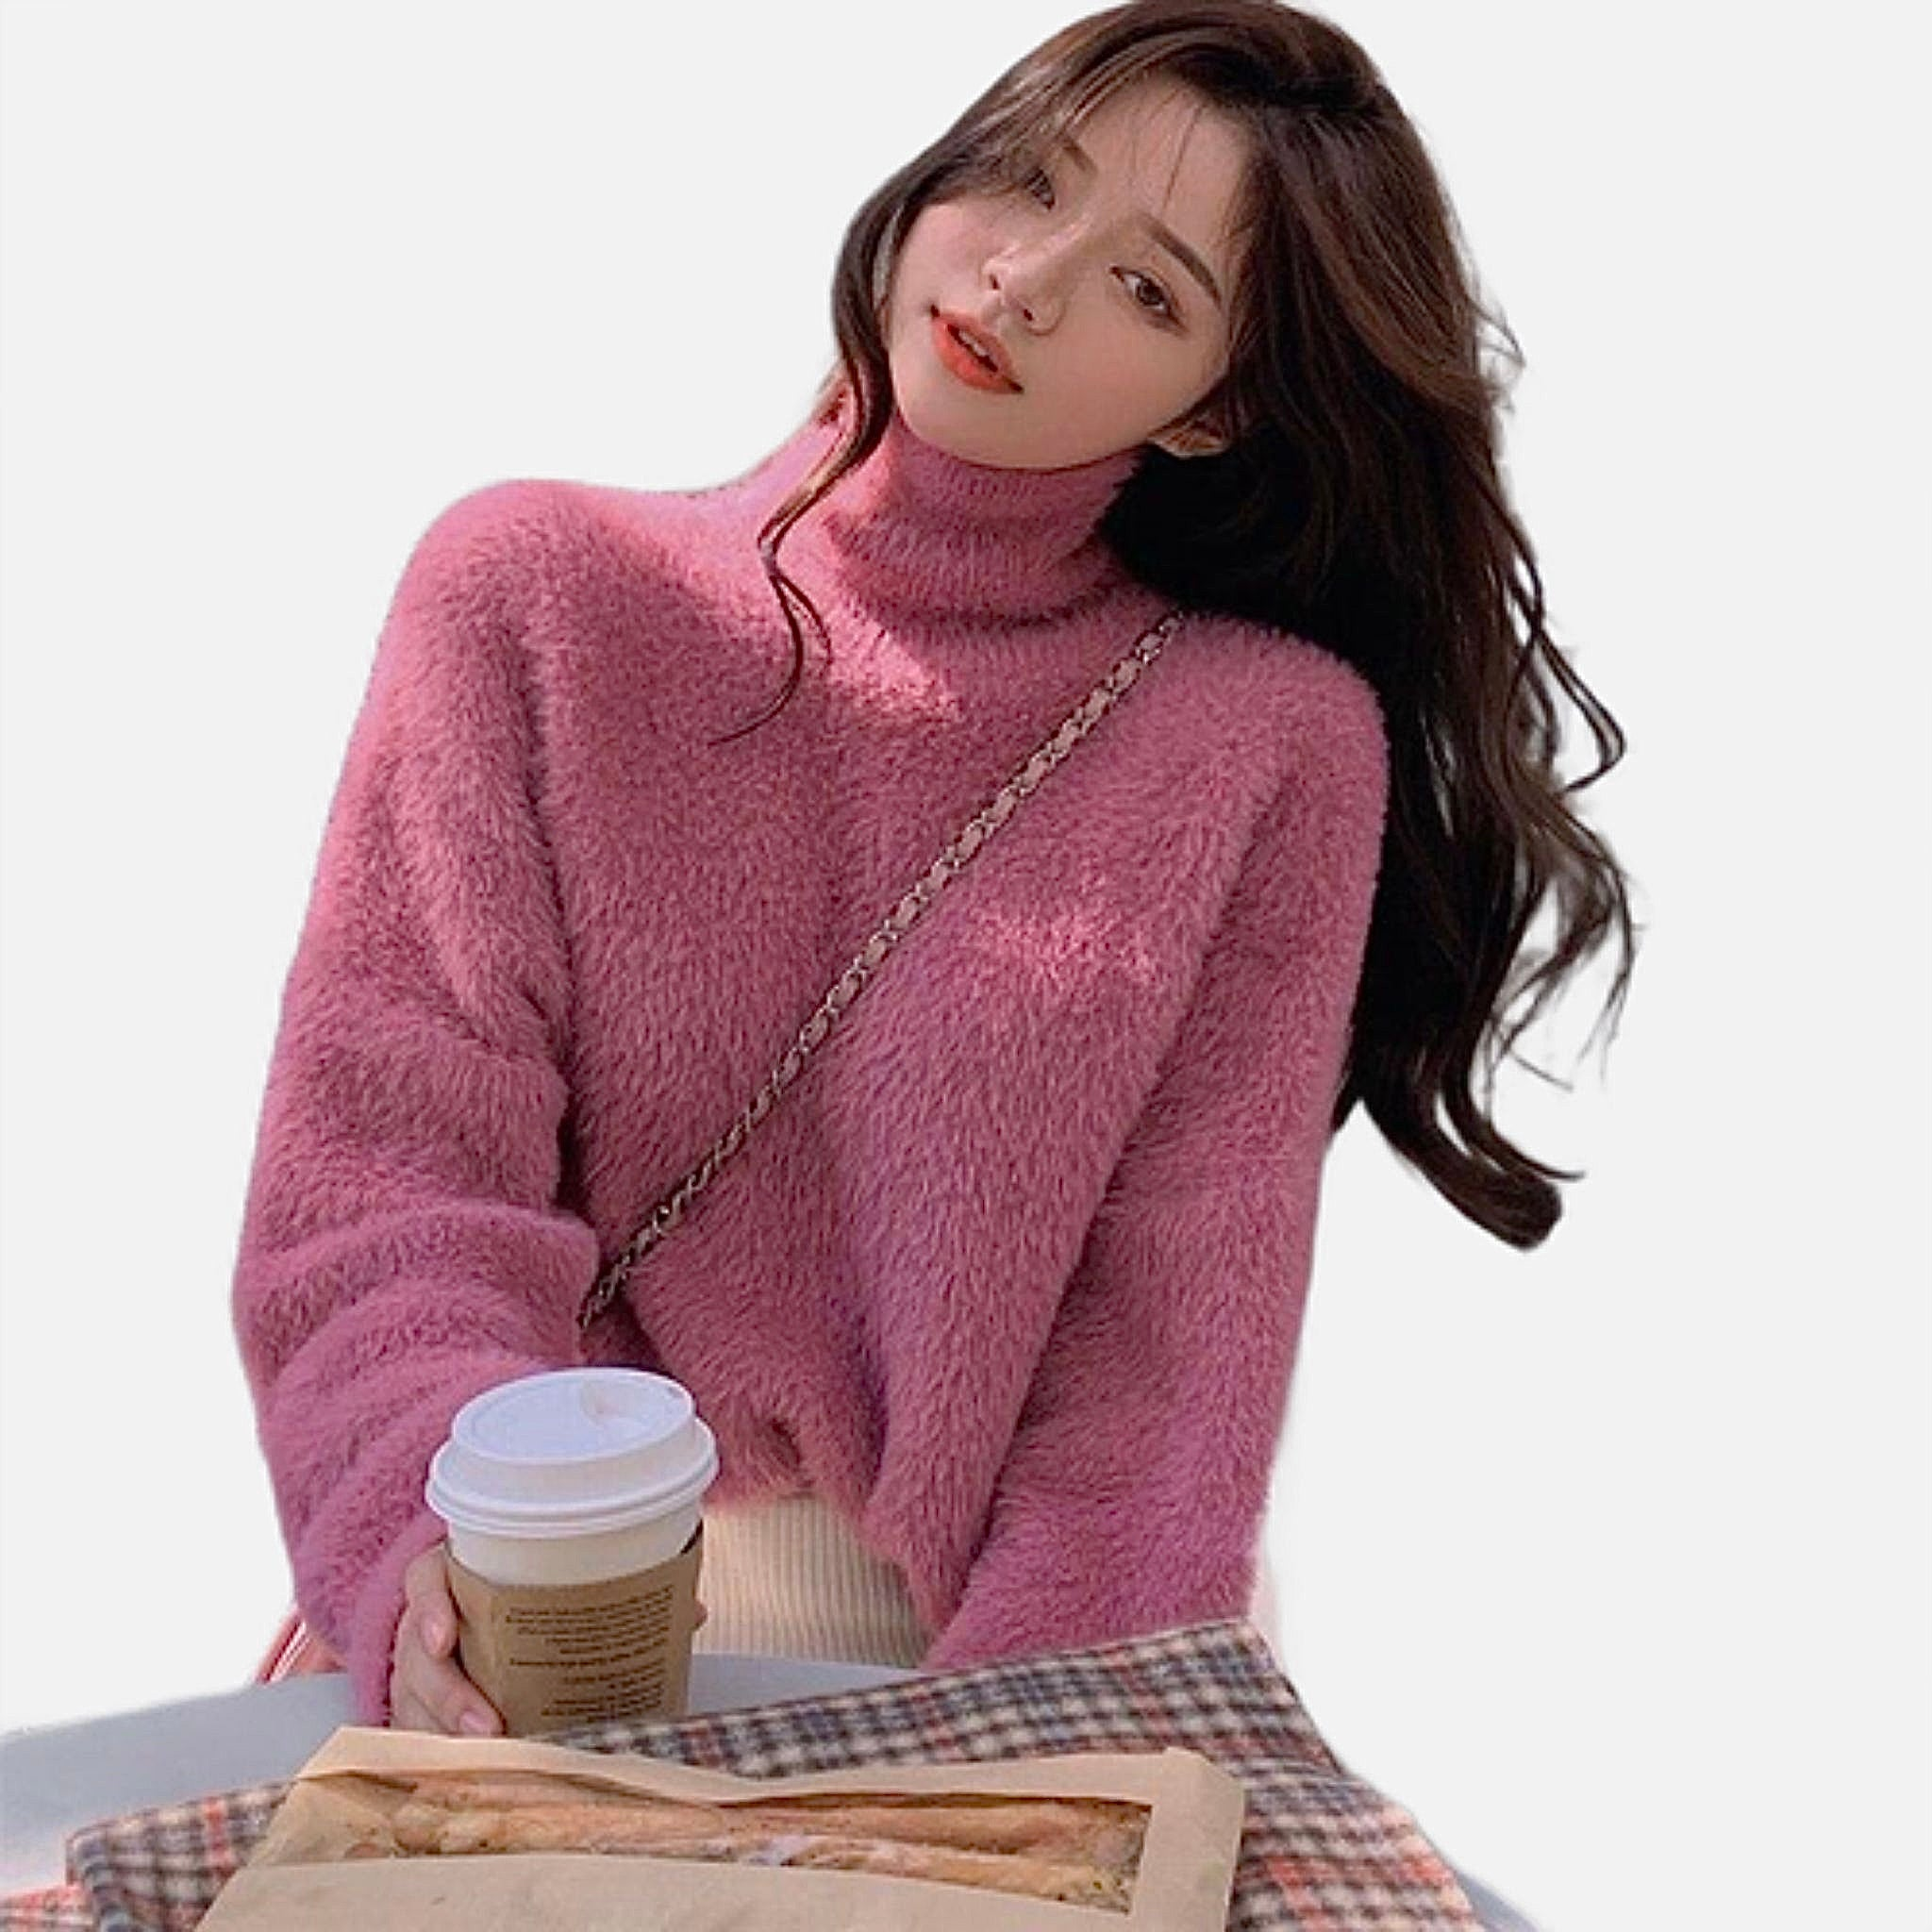 Cozy Turtleneck Sweater    Long Sleeve Sweaters Pink Knit Loose Jumper Women's Pullover Sweaters